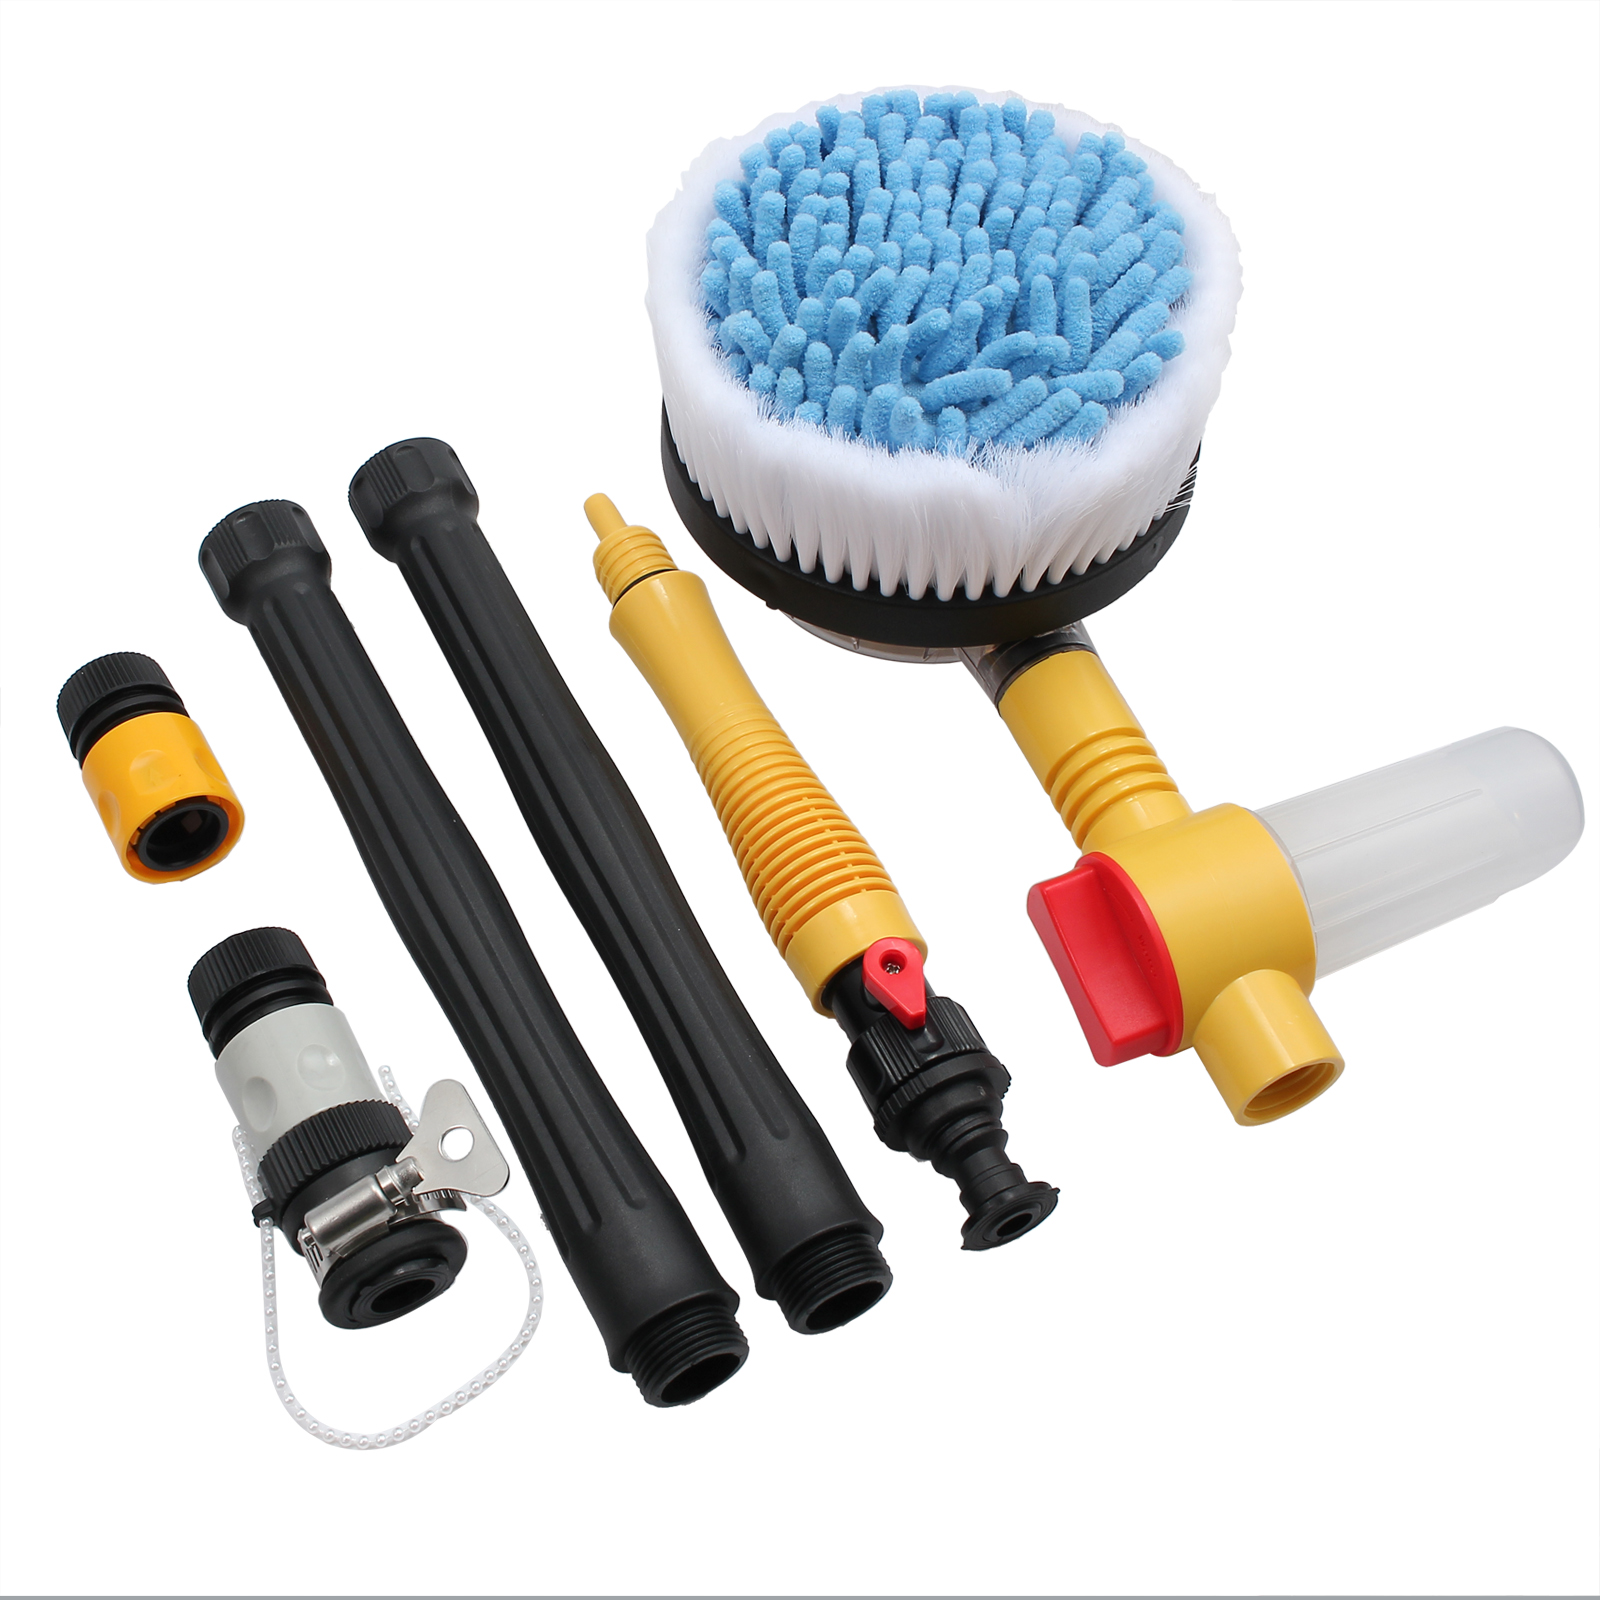 ESYNIC Car Rotating Pole Vehicle Wash Washing Cleaning Brush Sponge Cleaner Hose Car Pressure Washer Rotating Wash Brush Vehicle Care Washing Sponge Cleaner Tool